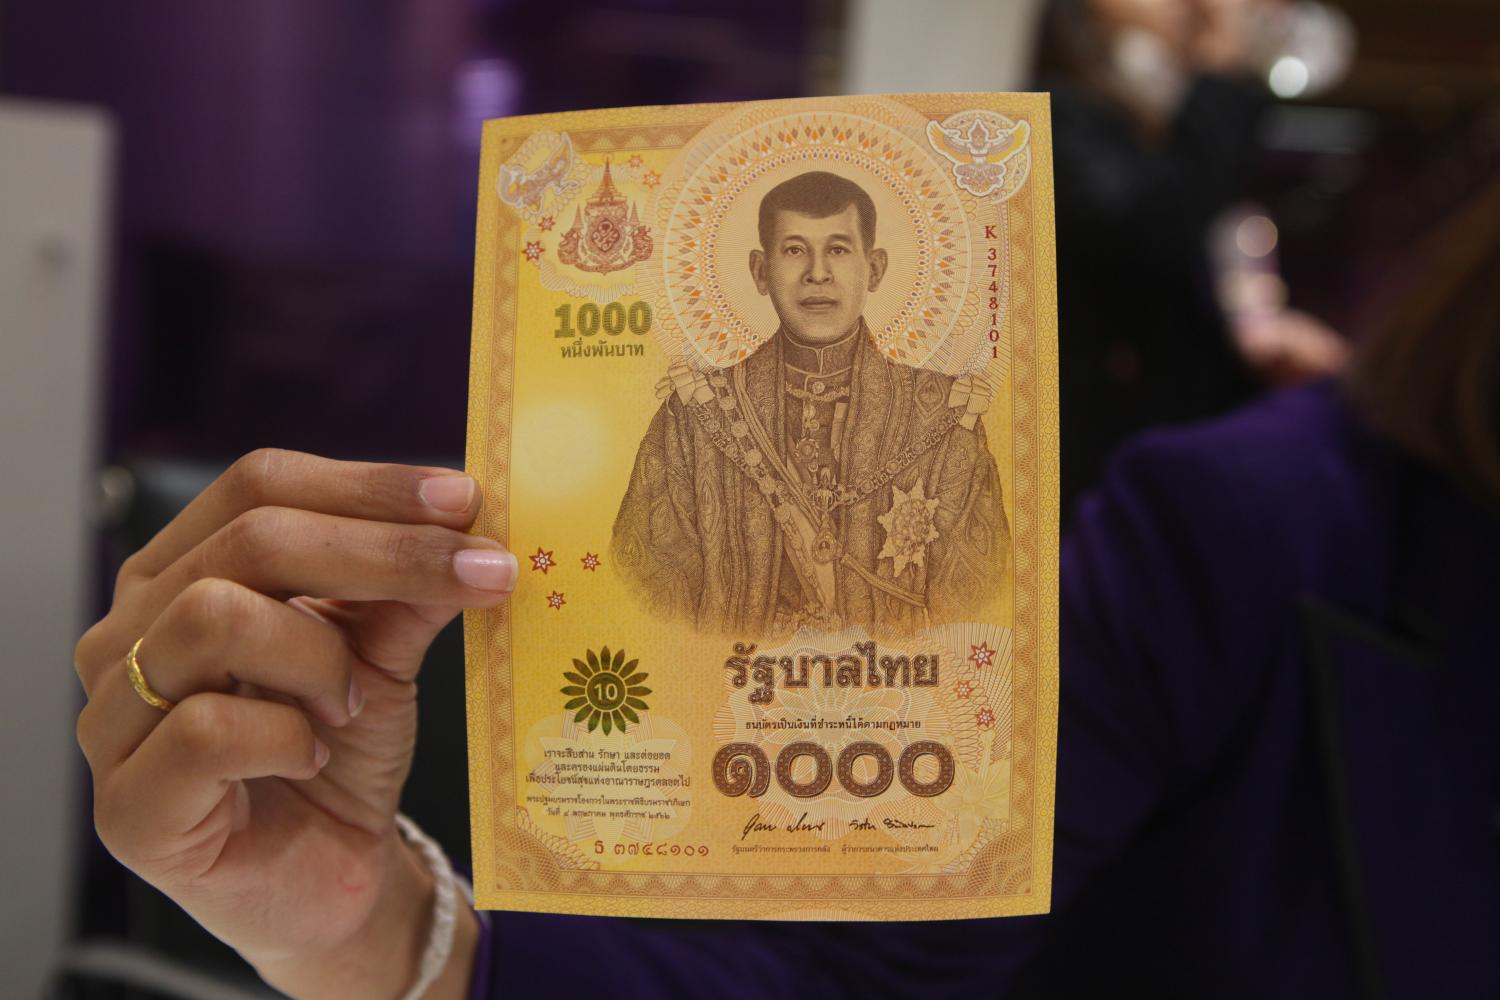 Commemorative 1000 Baht Notes